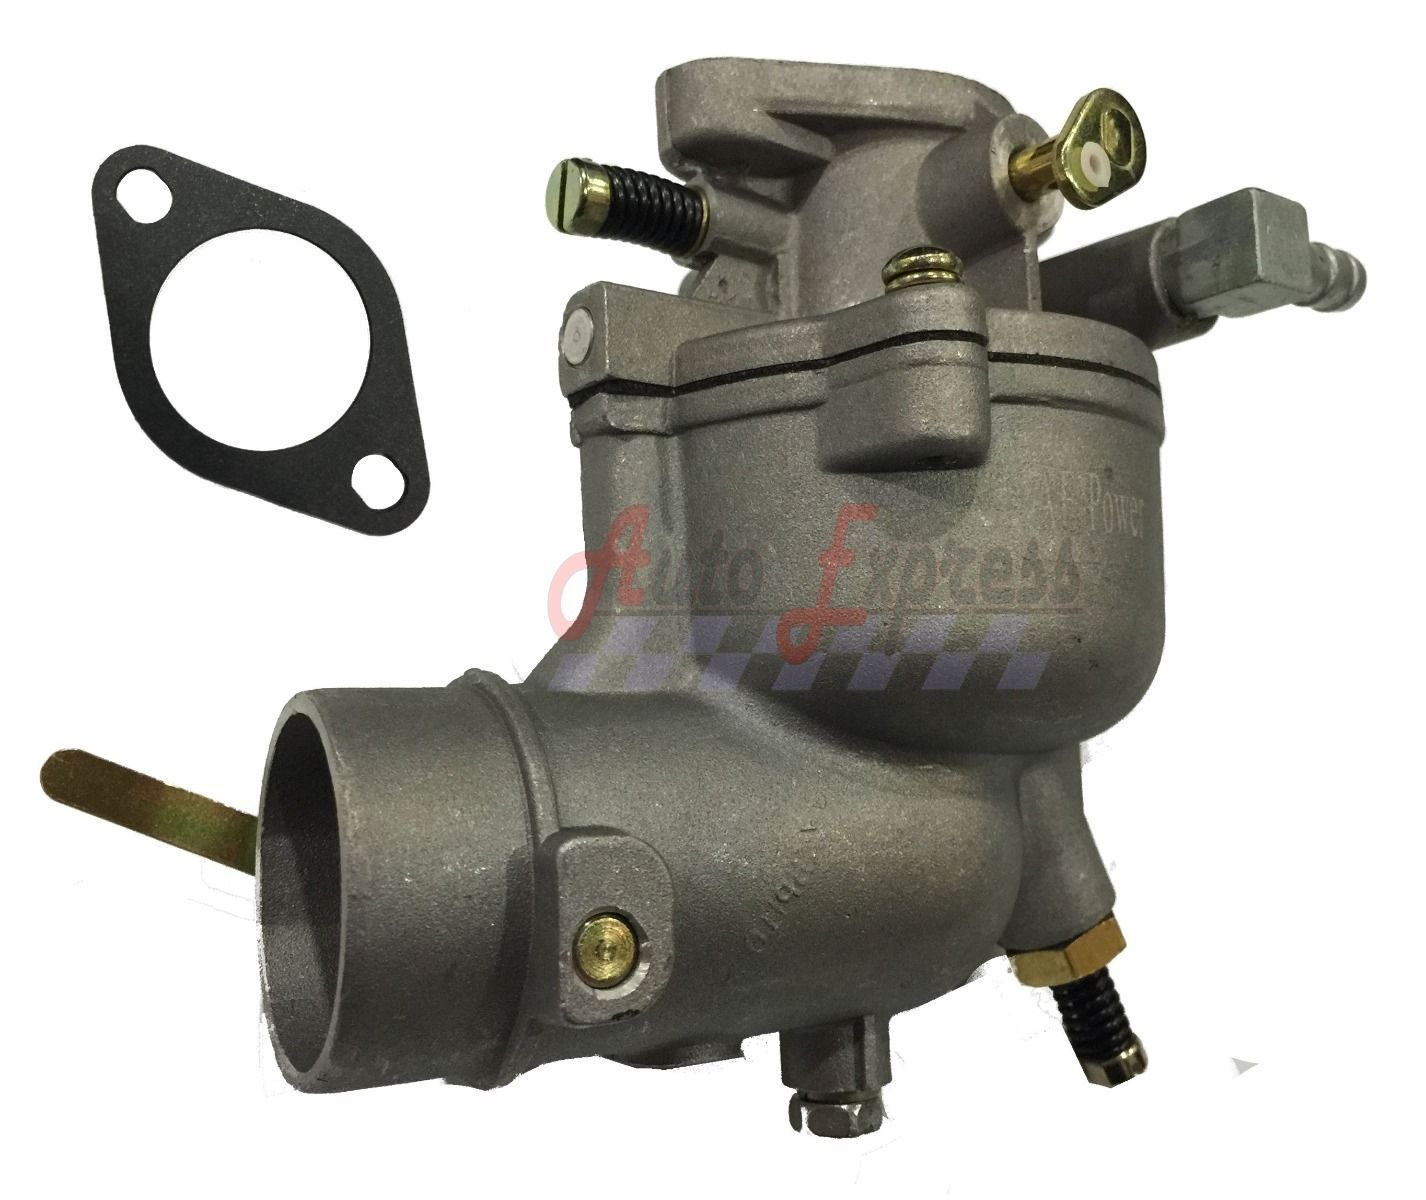 Carburetor for BRIGGS & STRATTON 390323 394228  293950 ENGINE Carb NEW B&S